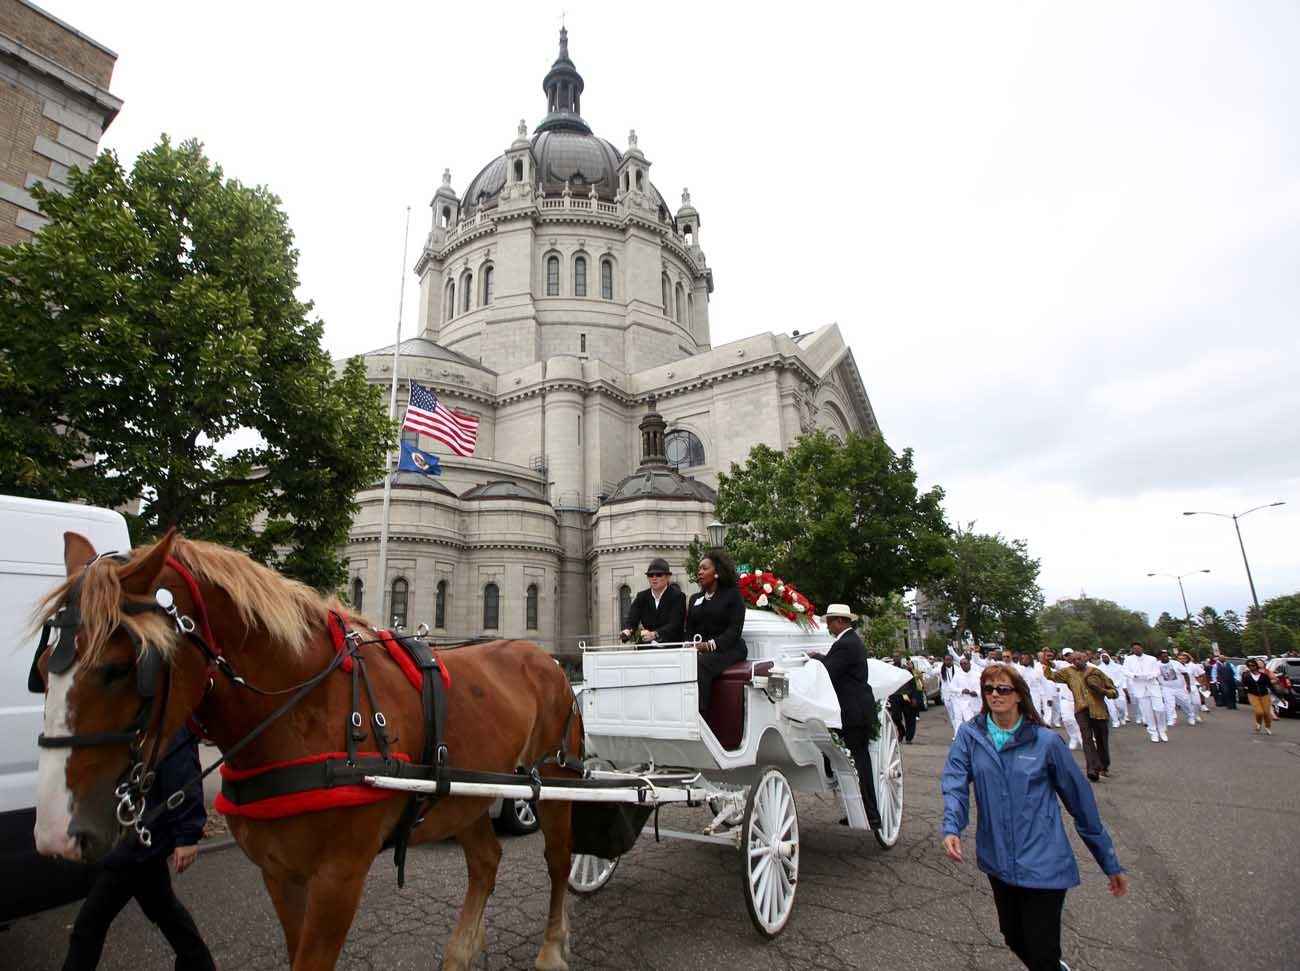 A horse-drawn carriage carries the casket of Philando Castile July 14 as it passes the Cathedral of St. Paul in St. Paul, Minn. Church officials say the mother of 32-year-old man, who was not Catholic, requested the cathedral hold an ecumenical funeral service for her son. Castile was shot and killed by a police officer July 6. (CNS photo/Dave Hrbacek, The Catholic Spirit)